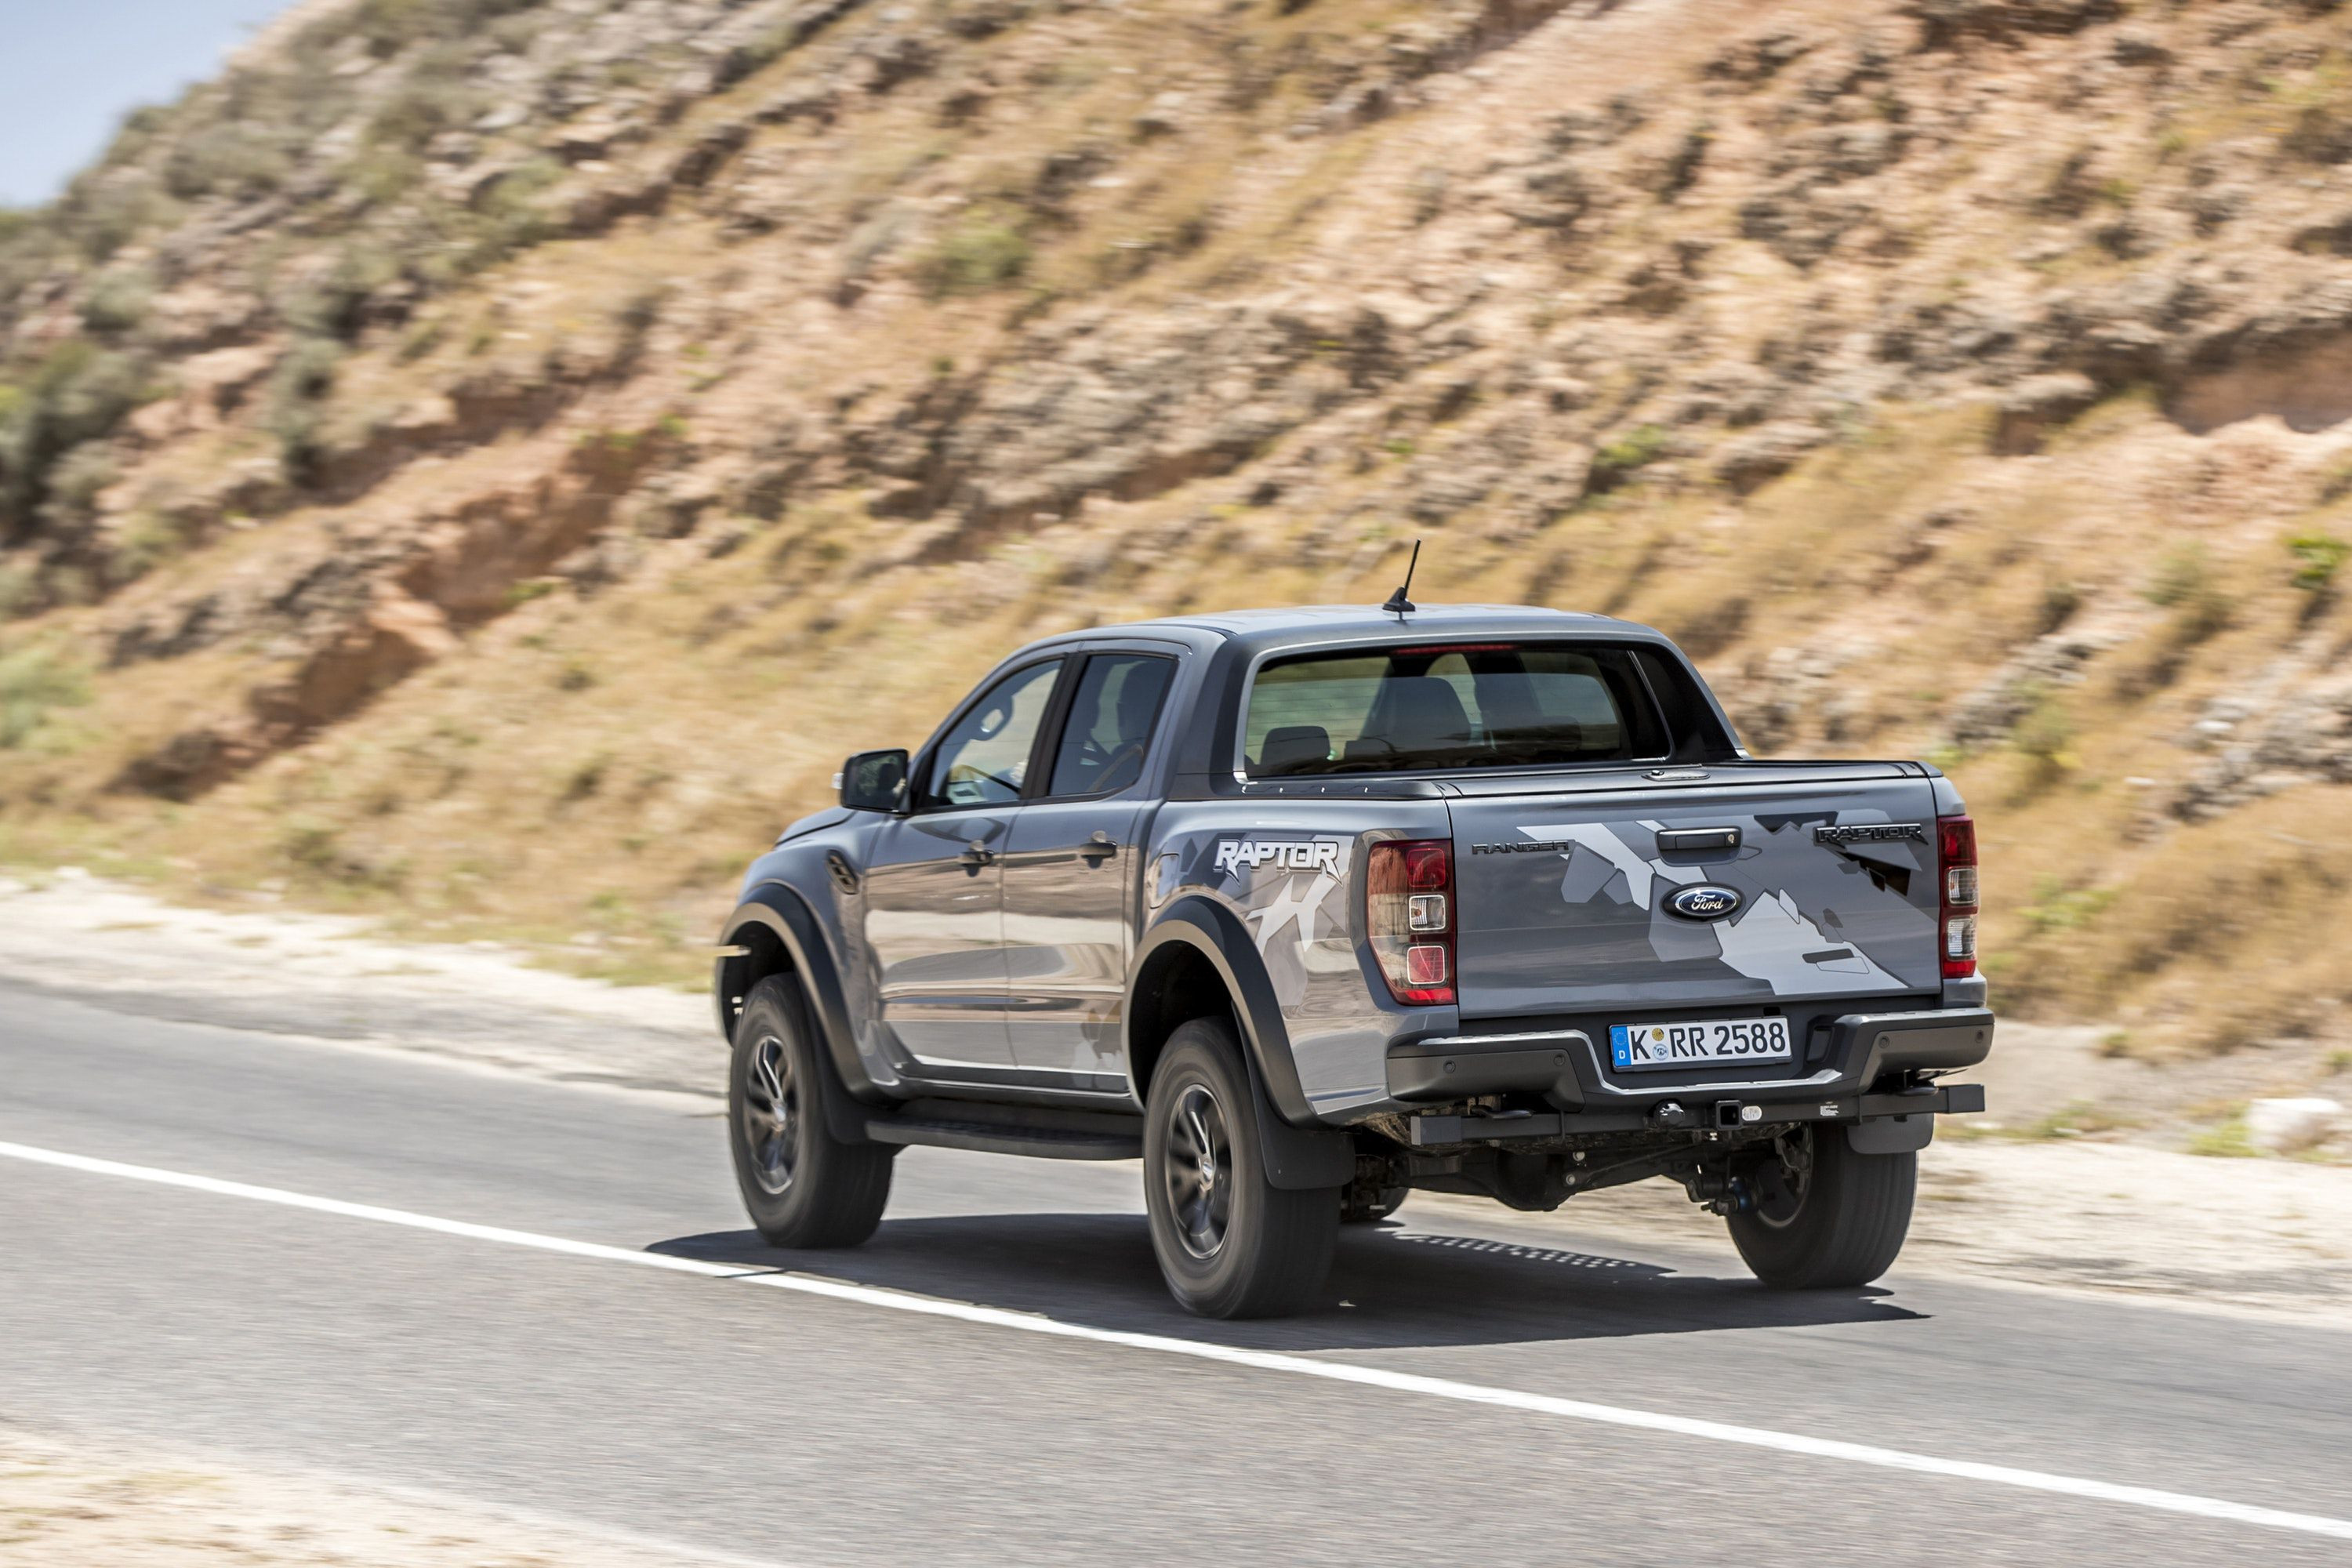 Rear of the Ford Ranger Raptor driving off down a road